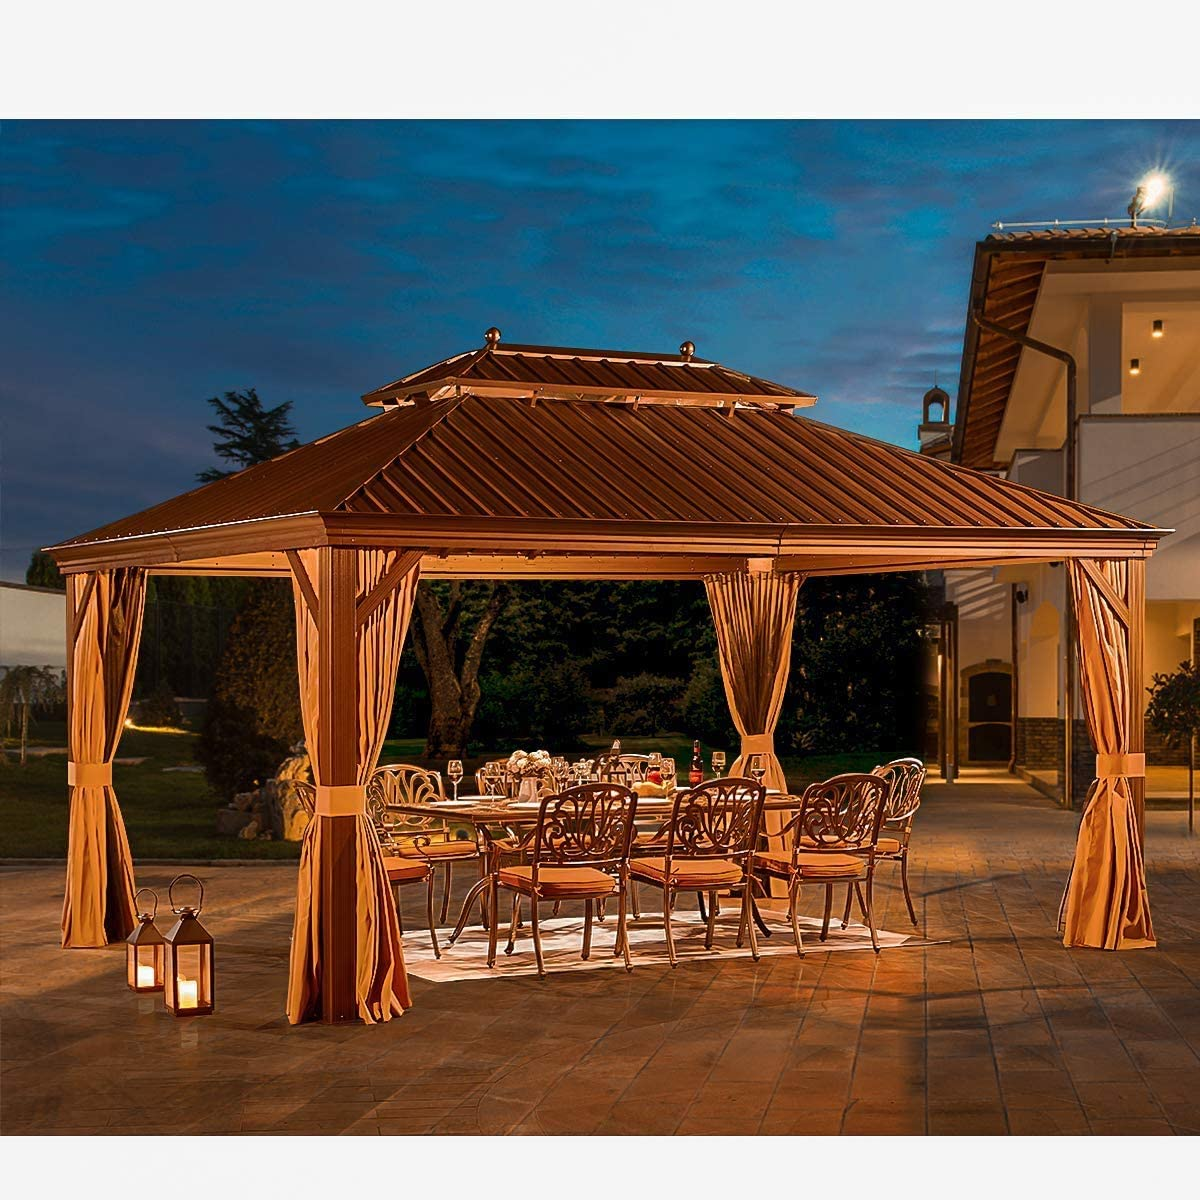 YOLENY 12' X 16' Hardtop Gazebo Galvanized Steel Outdoor Gazebo Canopy Double Vented Roof Pergolas Aluminum Frame with Netting and Curtains for Garden,Patio,Lawns,Parties